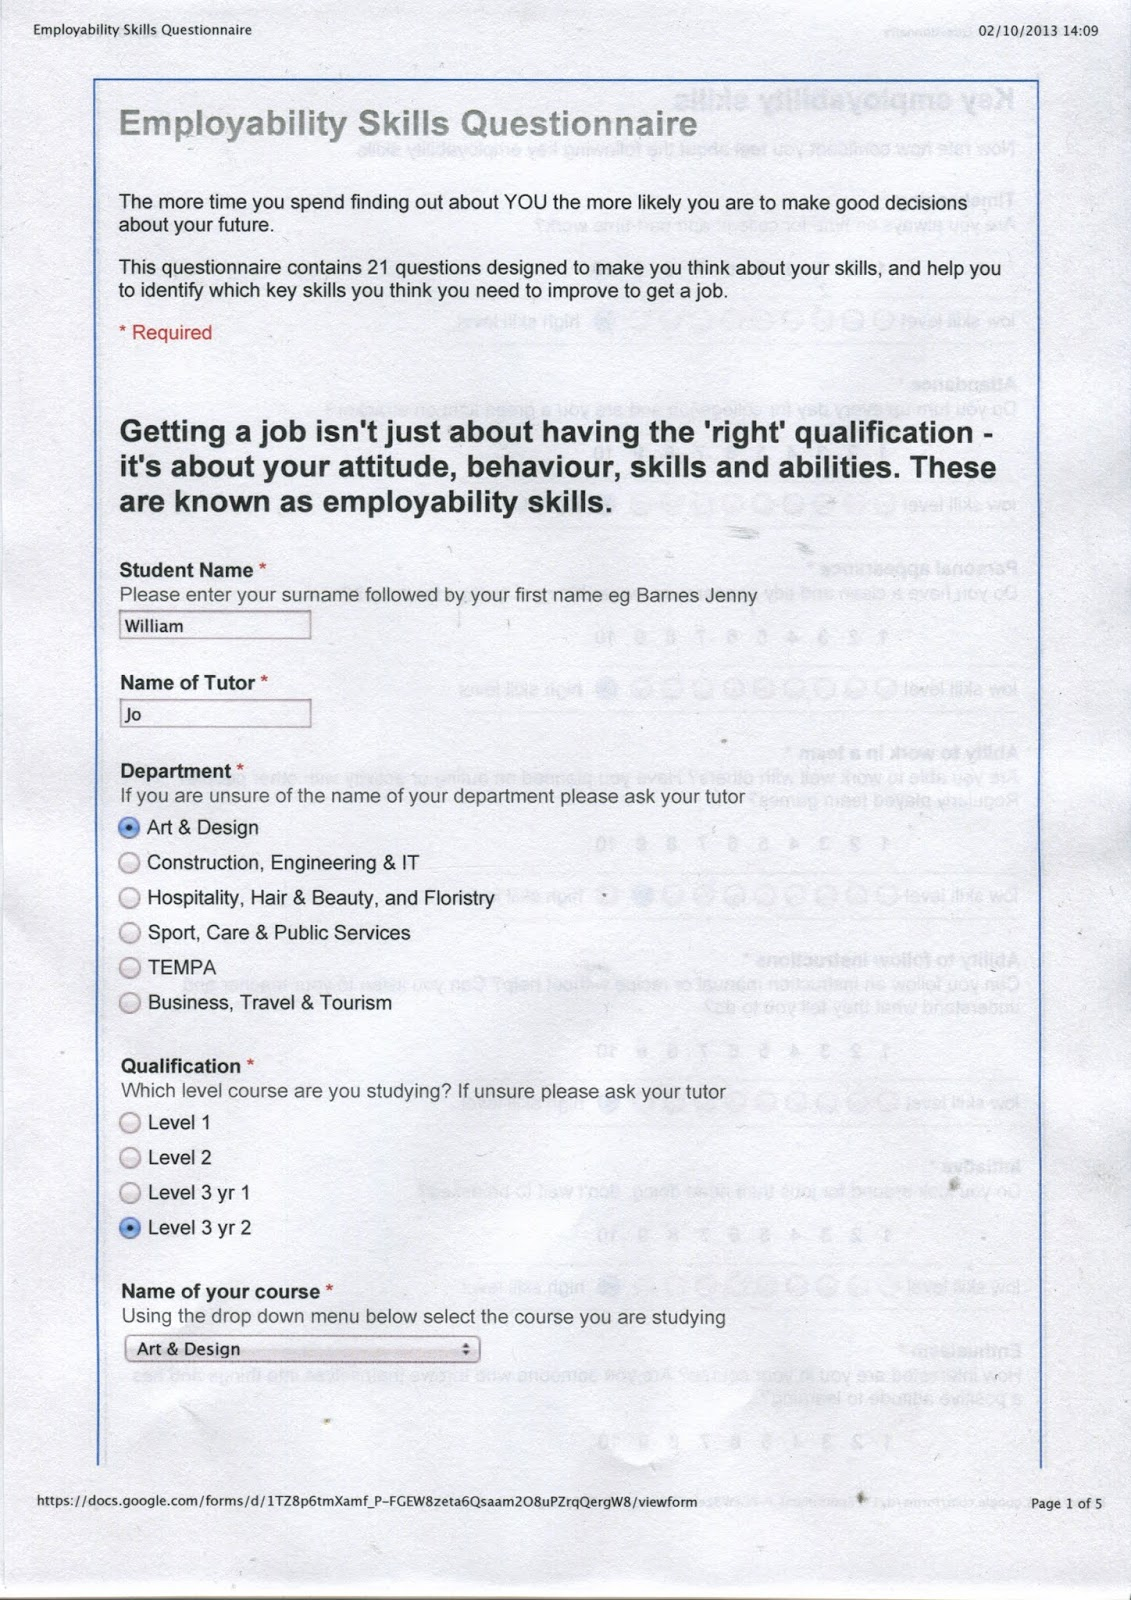 lauren willams employability skills questionnaire it has helped to decipher how employable i am and how good my attitude behaviour skills and abilities can effect job opportunities and uni applications